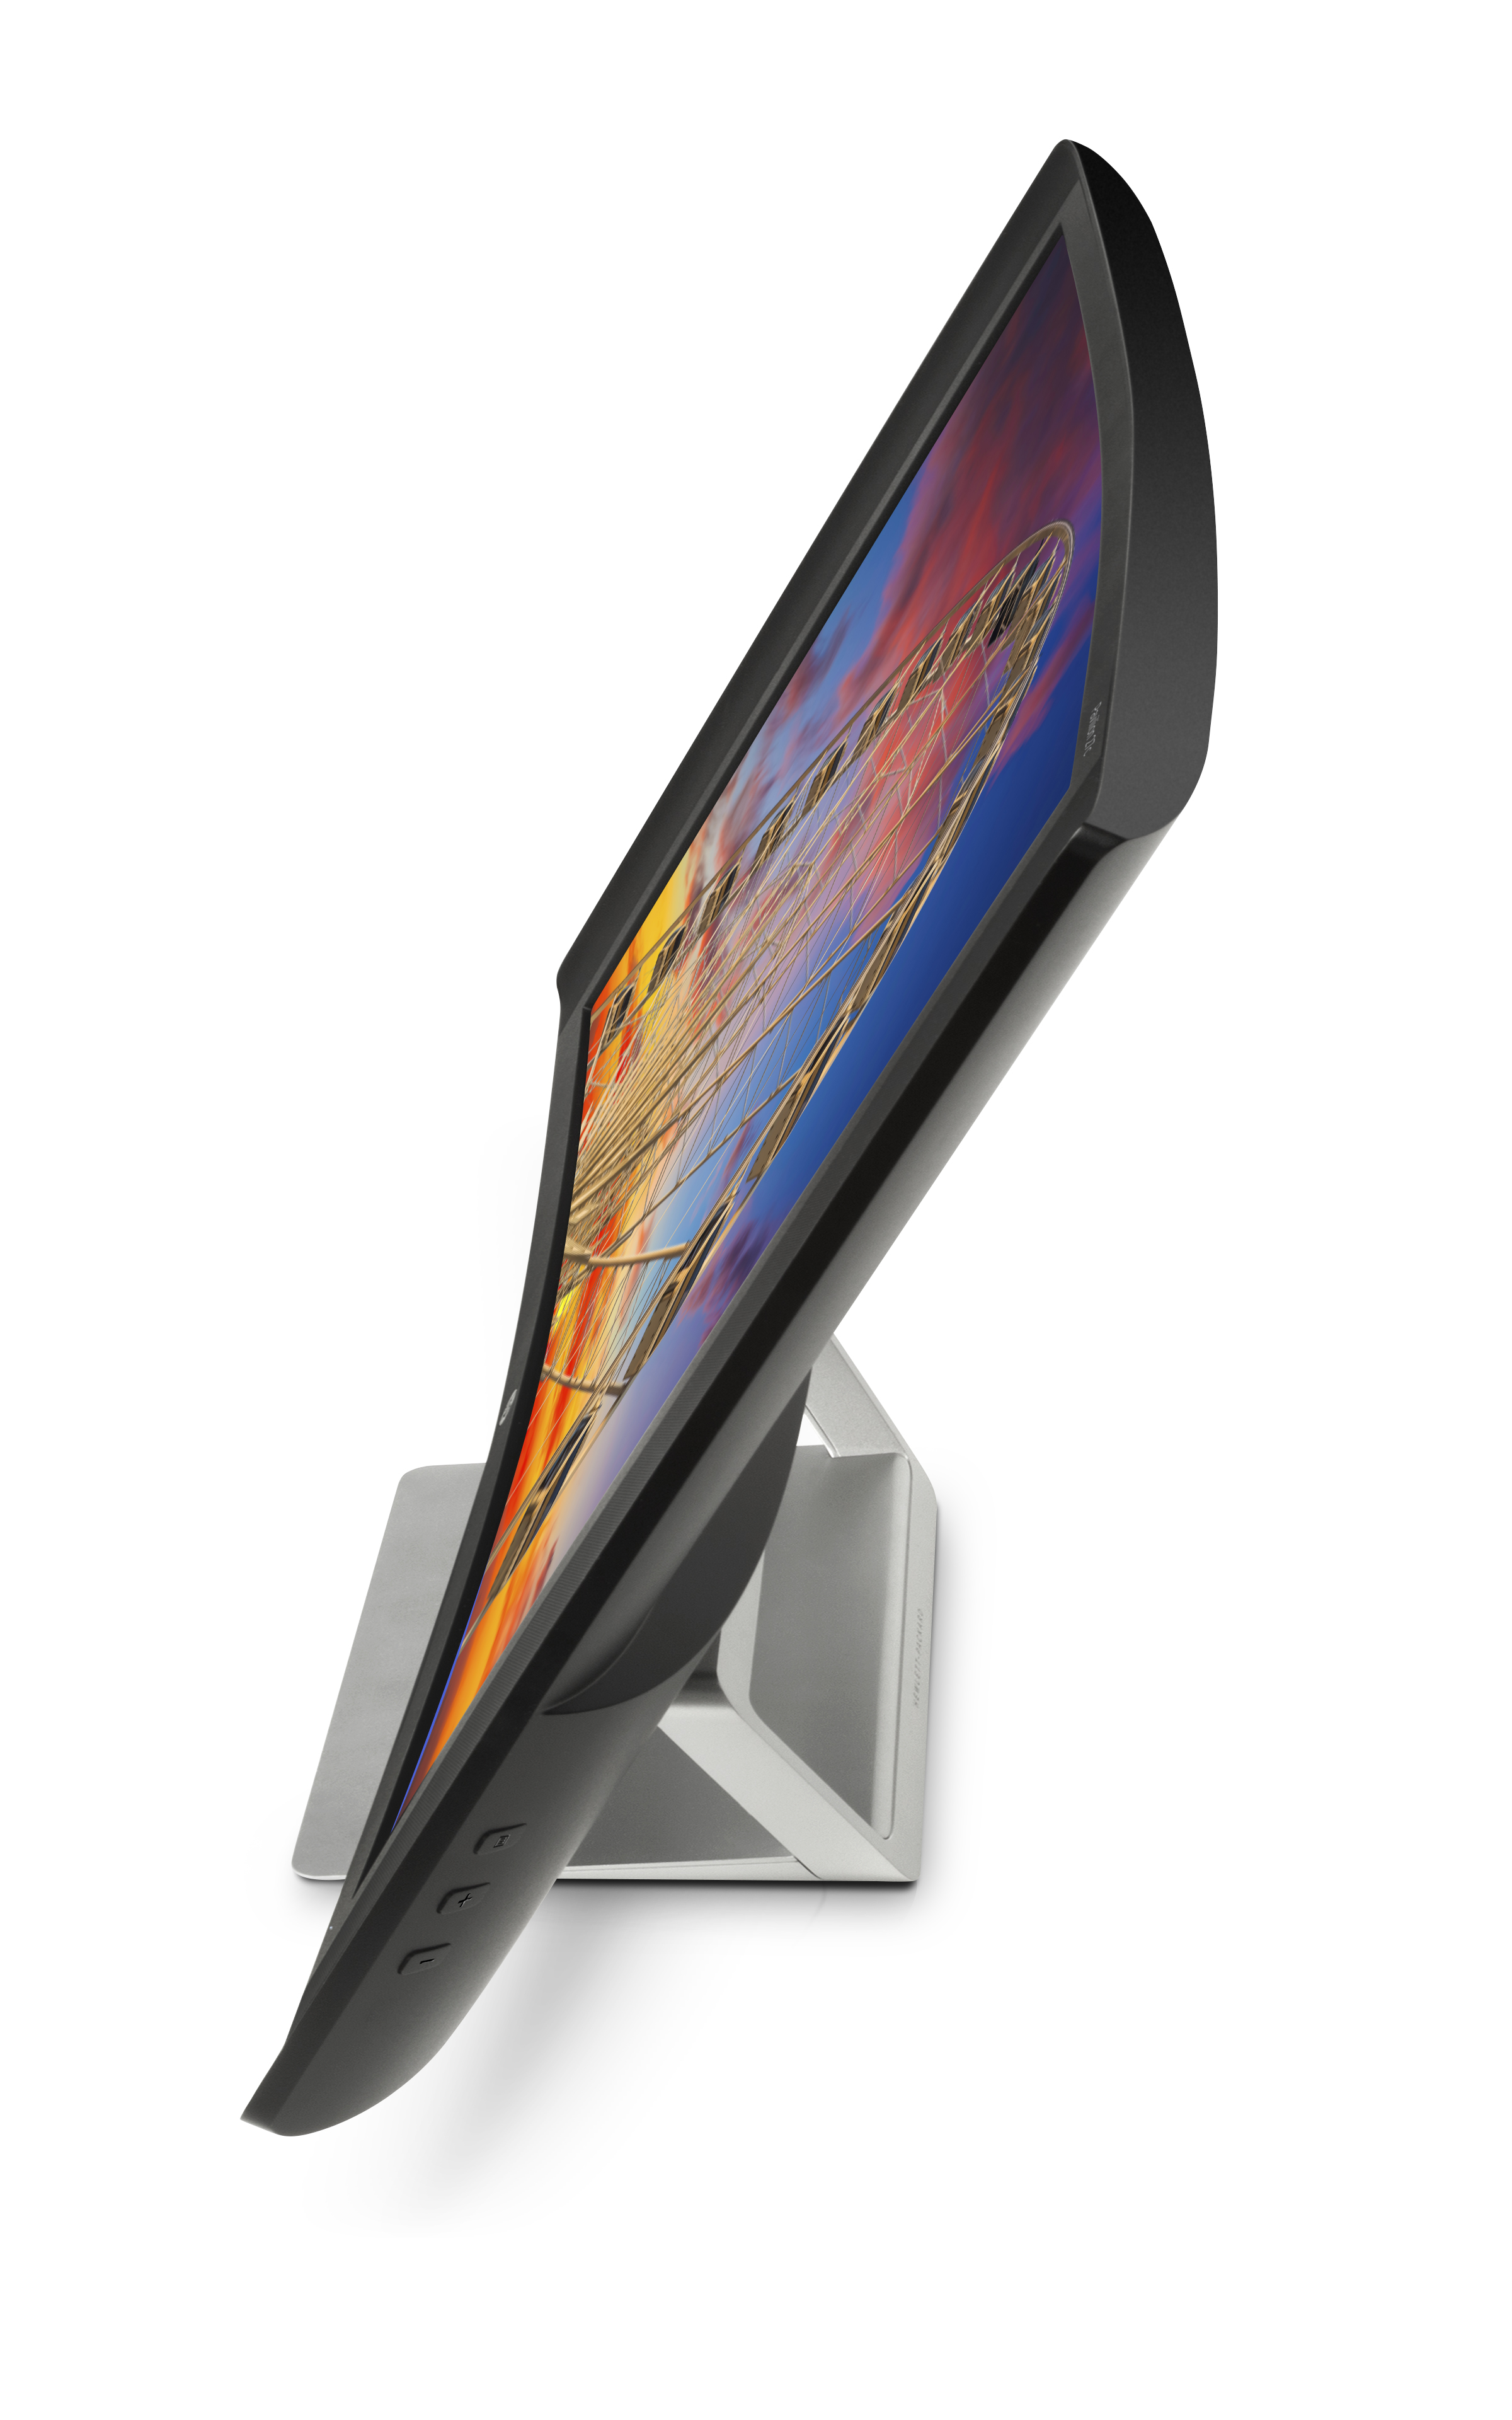 HP Pavilion 27c Curved Monitor, High Right Side Profile